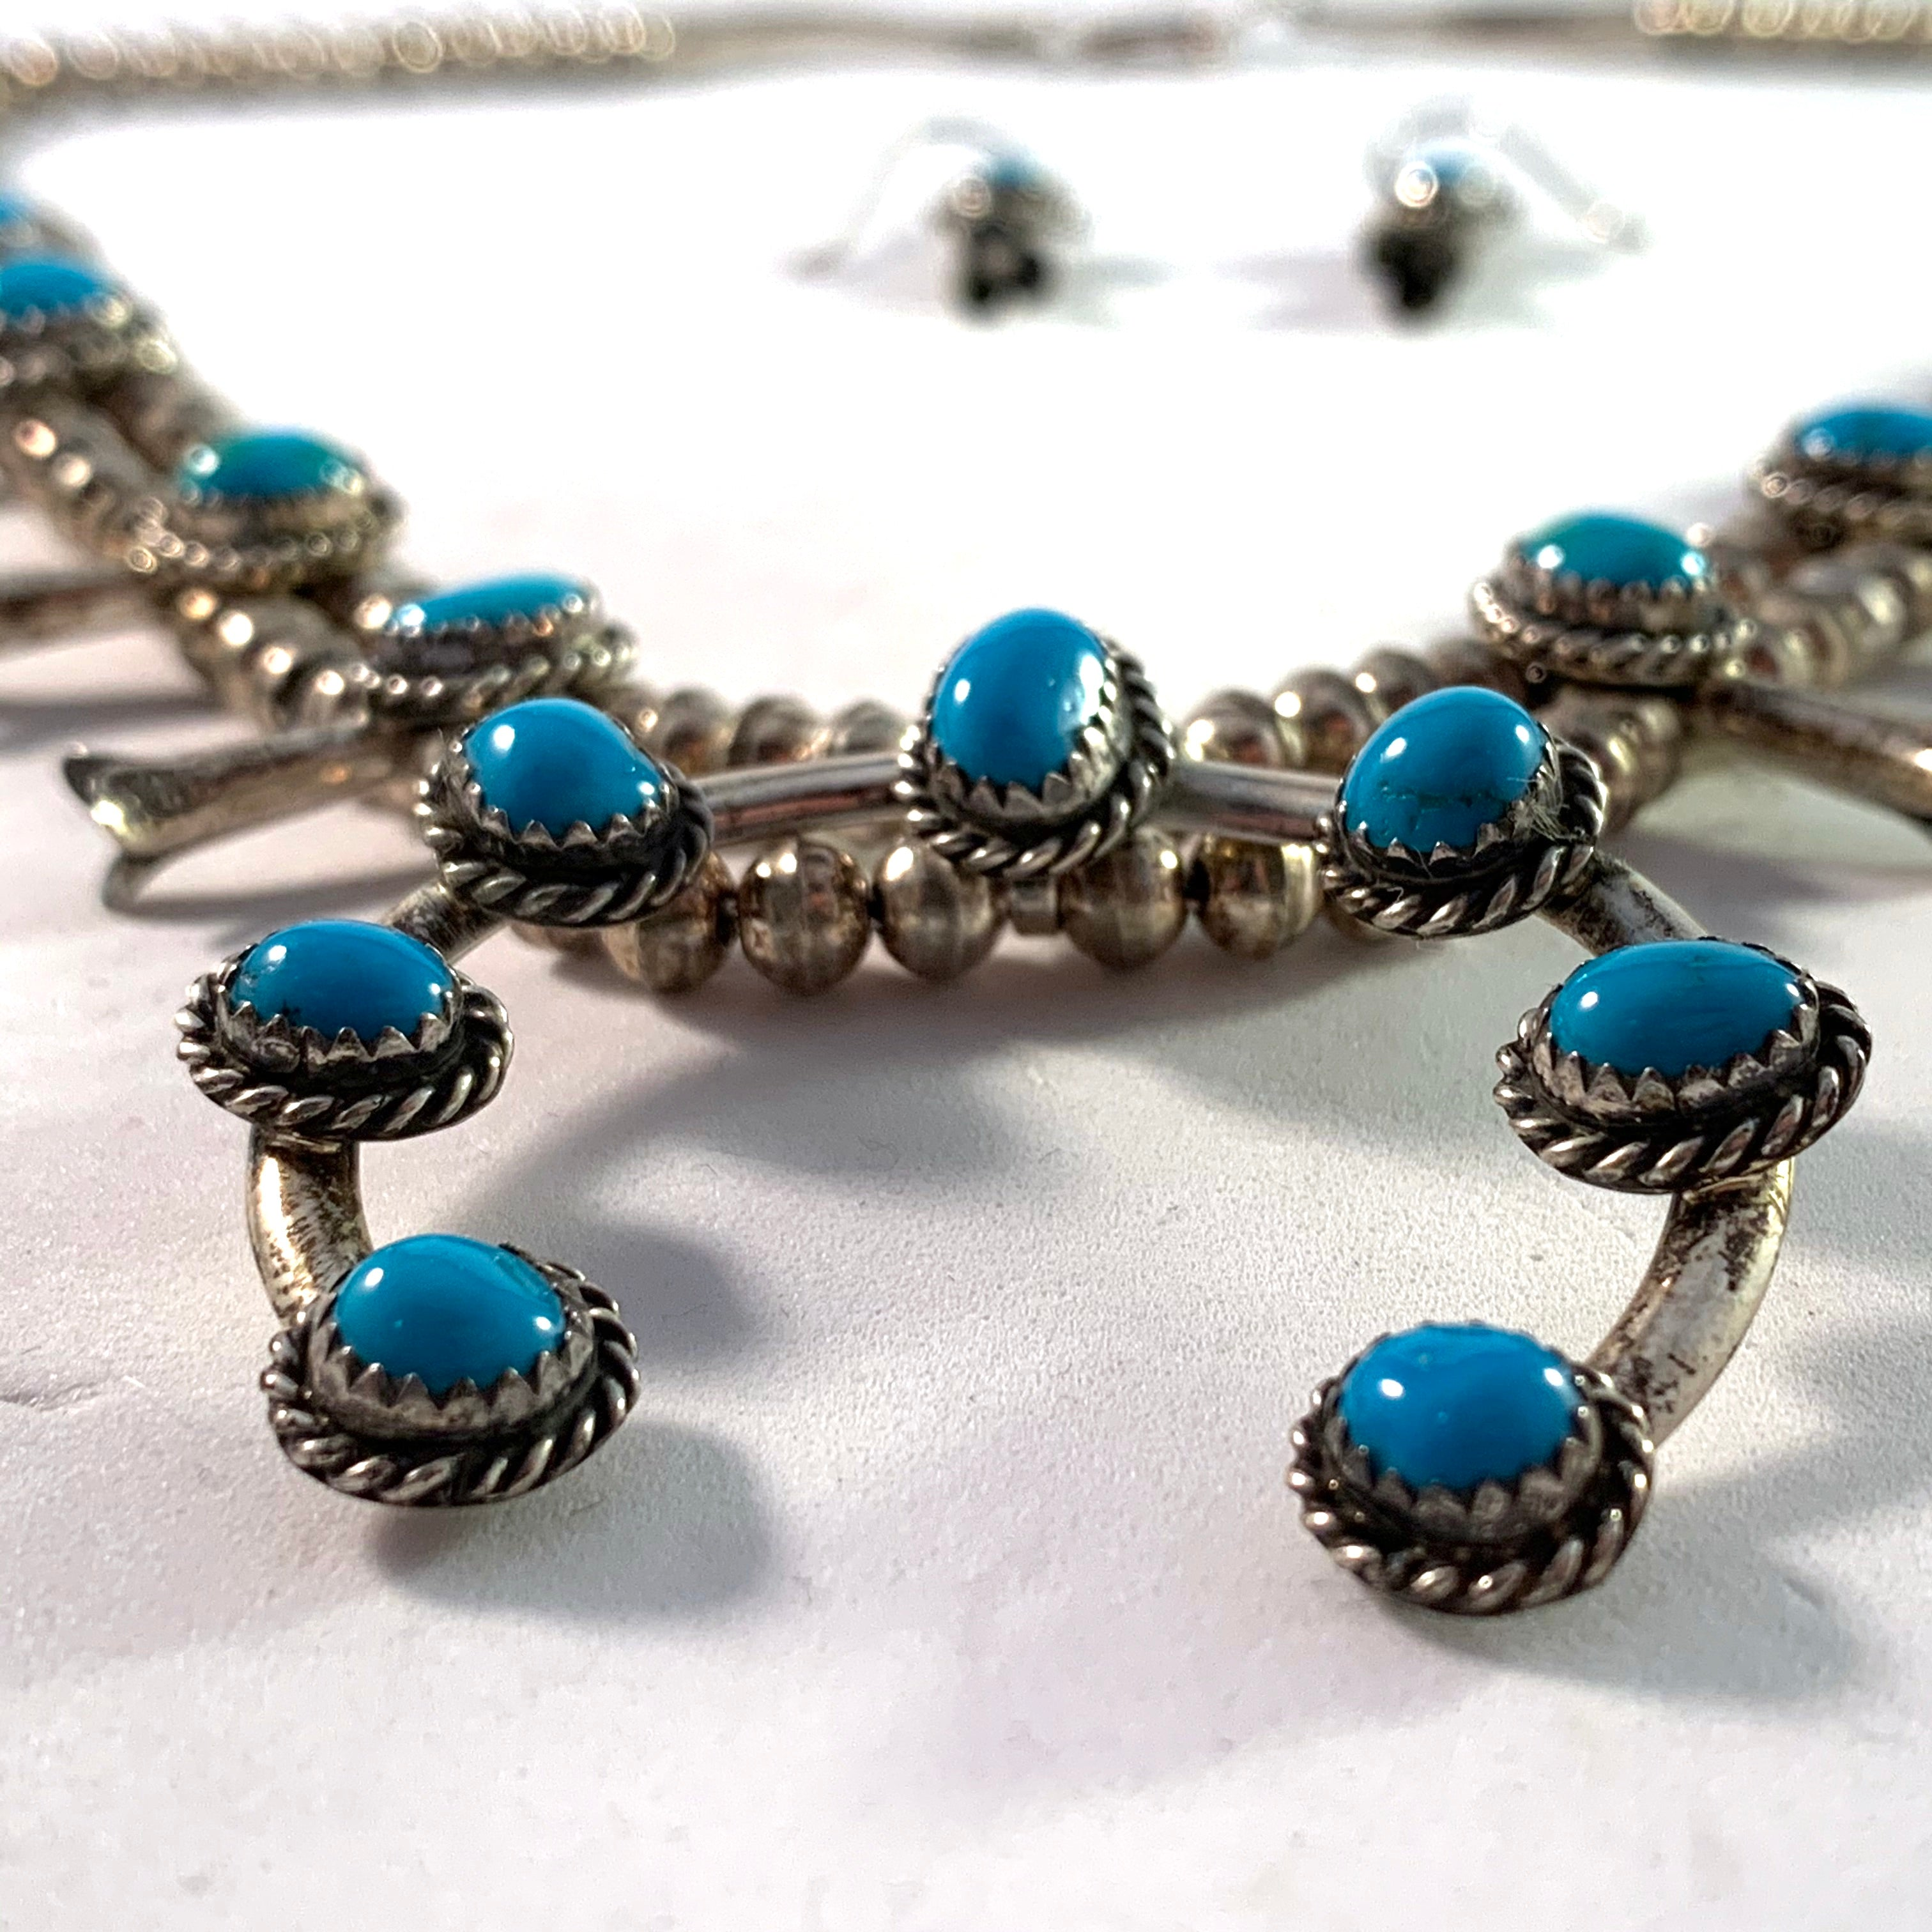 Signed Vintage Navajo Native American Sterling Silver Blue Turquoise Squash Blossom Necklace and Earrings.